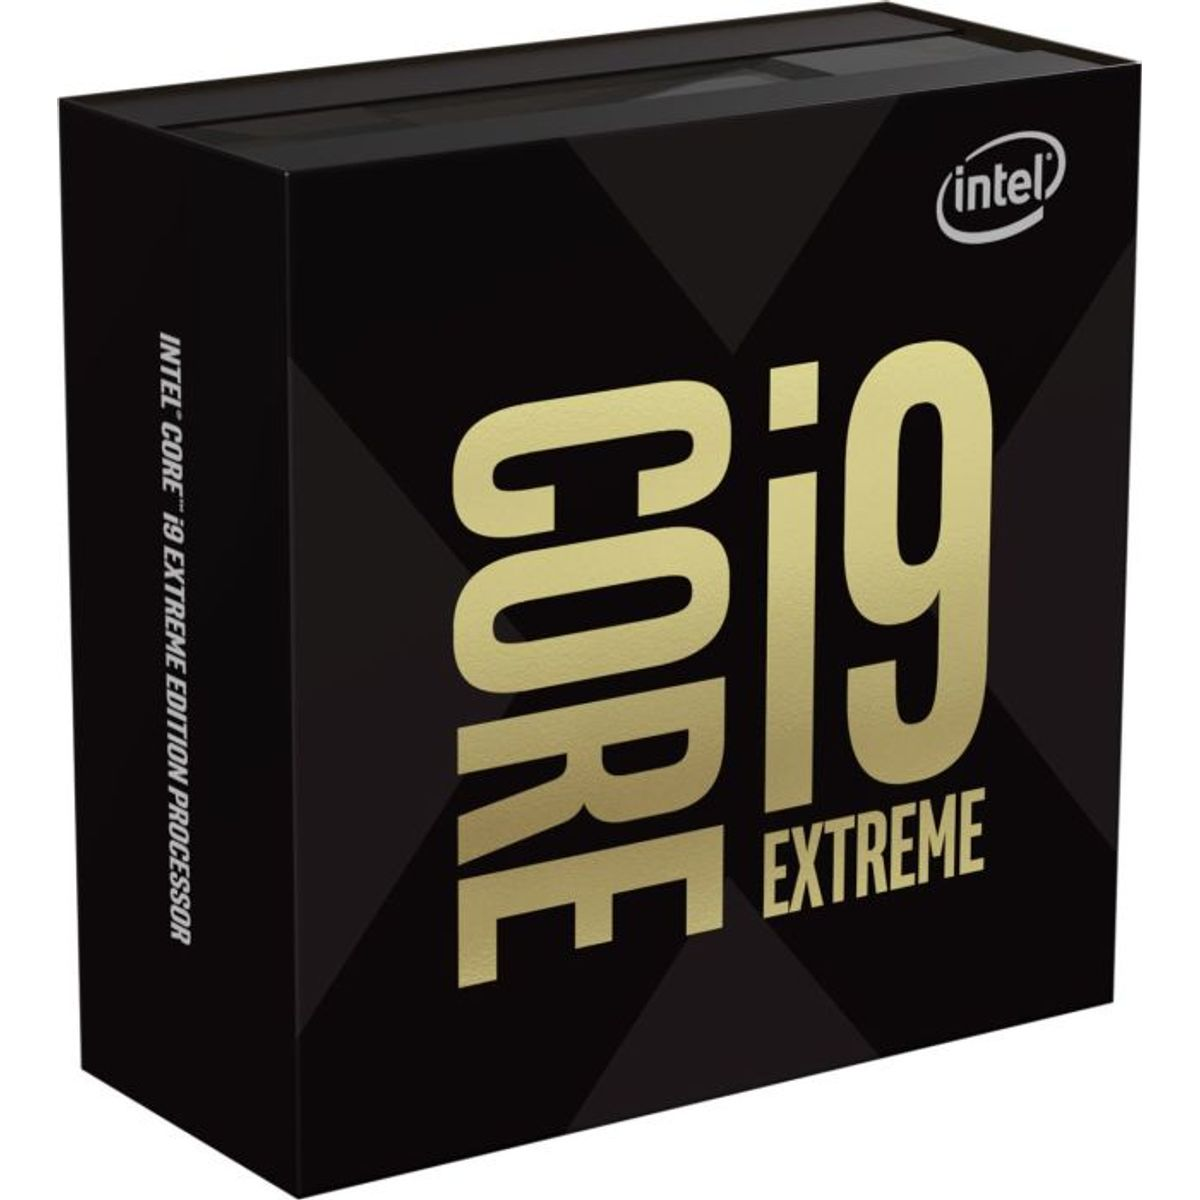 Intel Core i9-9980XE Extreme Edition, 18x 3.00GHz, boxed ohne Kühler (BX80673I99980X)